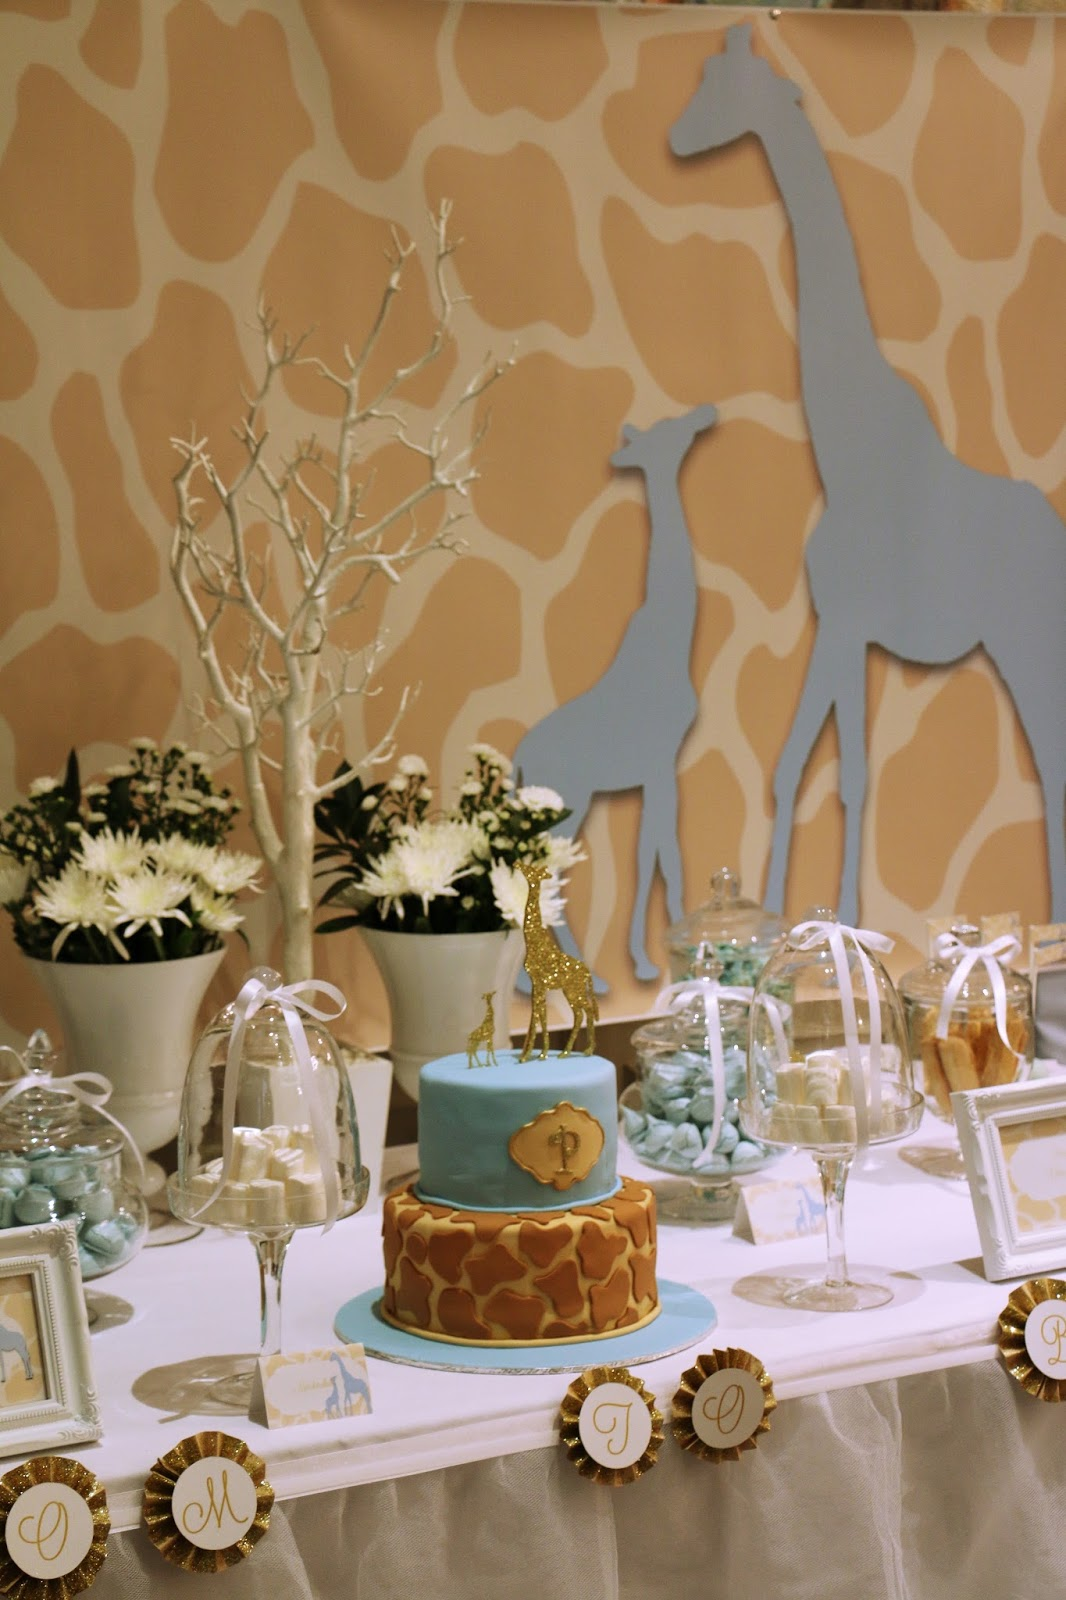 We Used A Silhouette Of A Mommy Giraffe And Itu0027s Baby Through The Artwork  And Used A Blue, White And Glittery Gold Color Scheme.